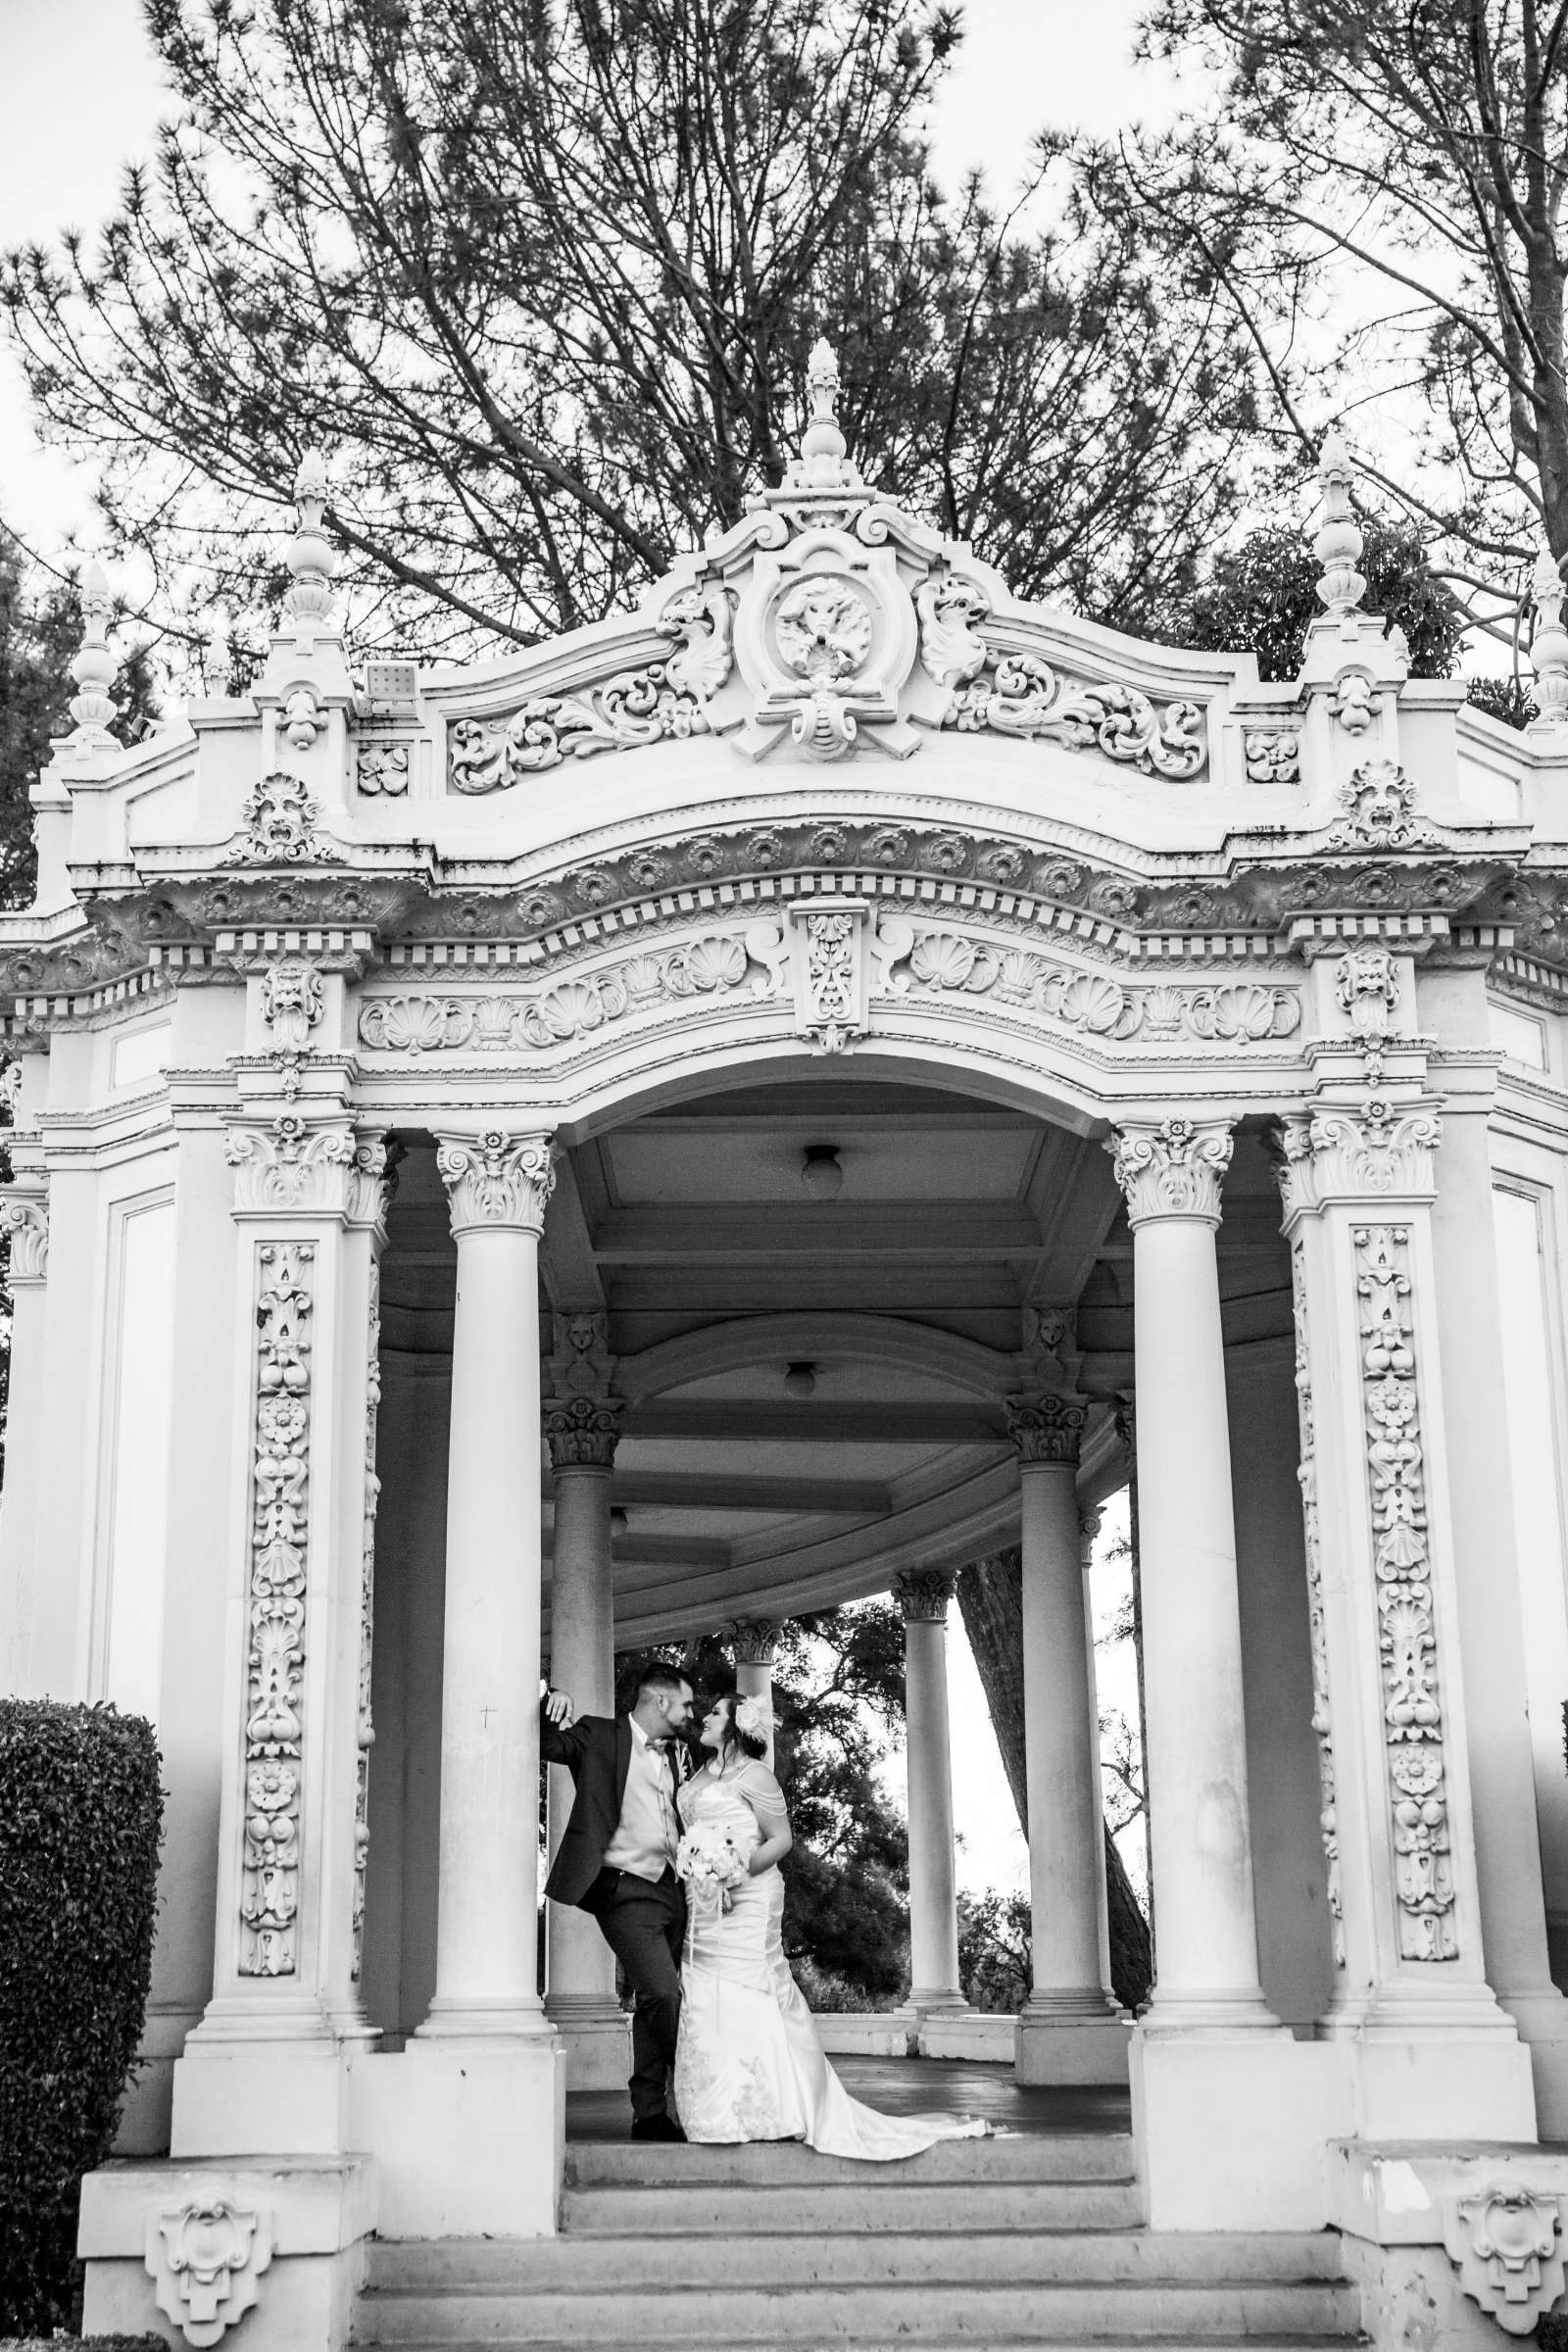 The Prado Wedding coordinated by Breezy Day Weddings, Aalis and Michael Wedding Photo #4 by True Photography